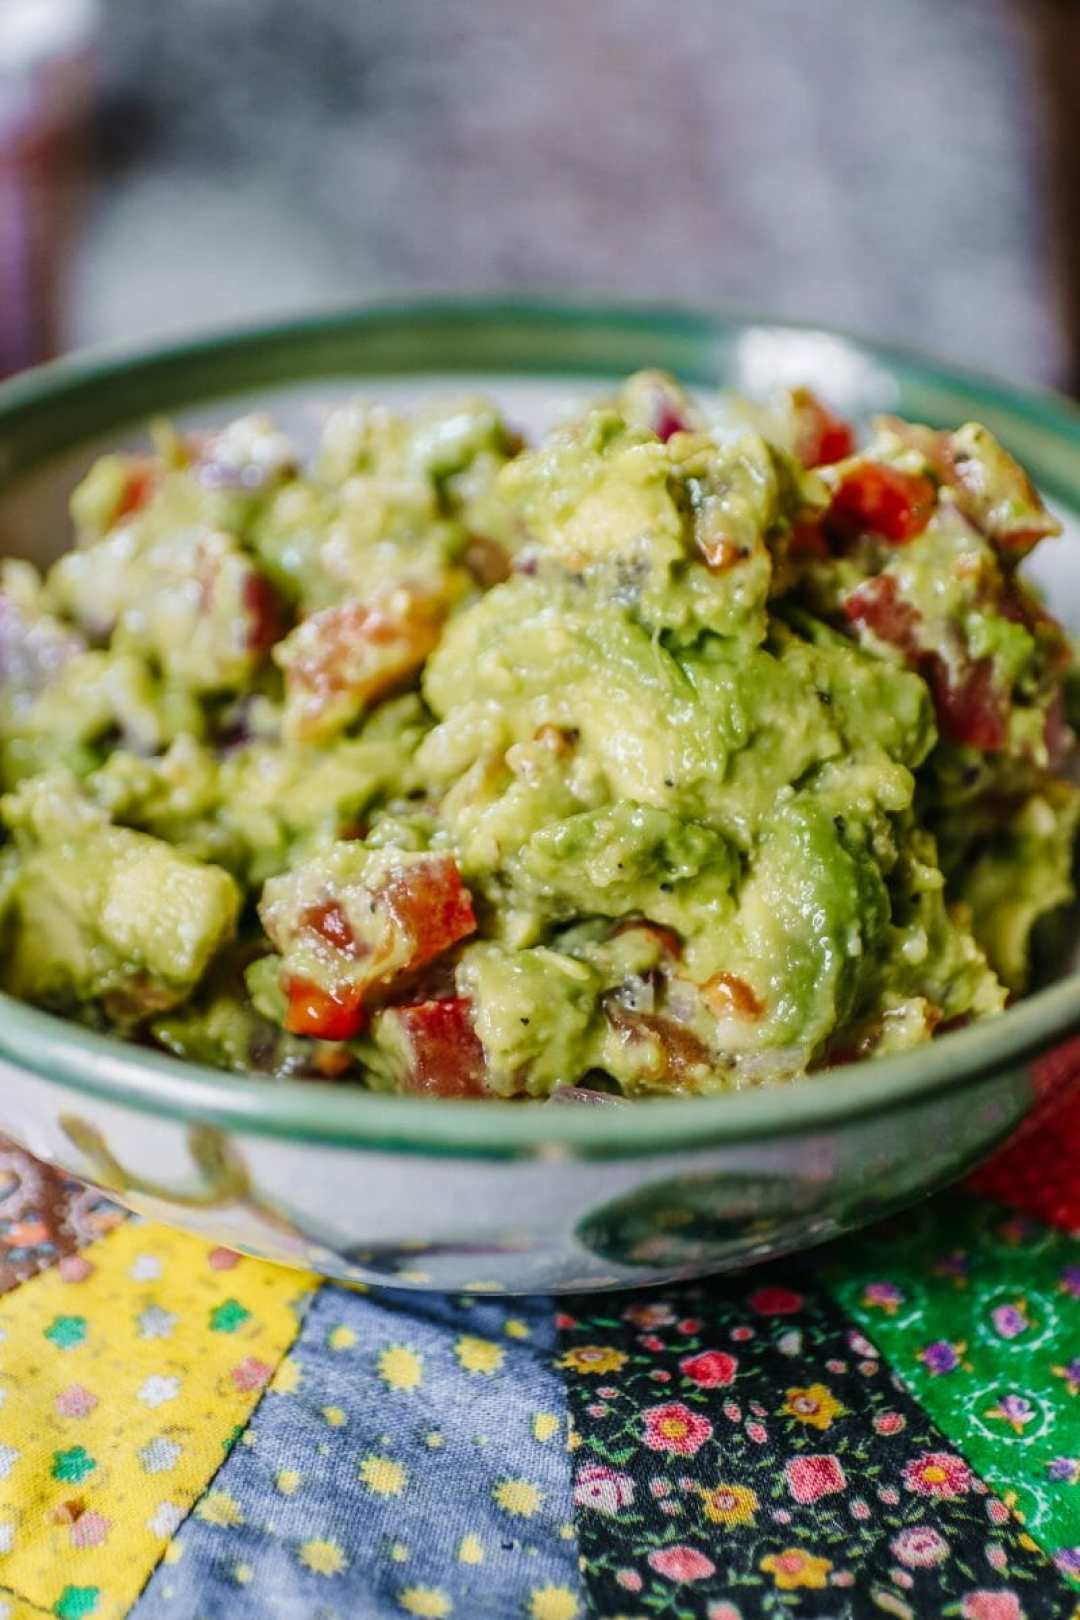 The Best Chunky Guacamole Recipe by JC Phelps of JCP Eats, A Kentucky-Based Food Blog